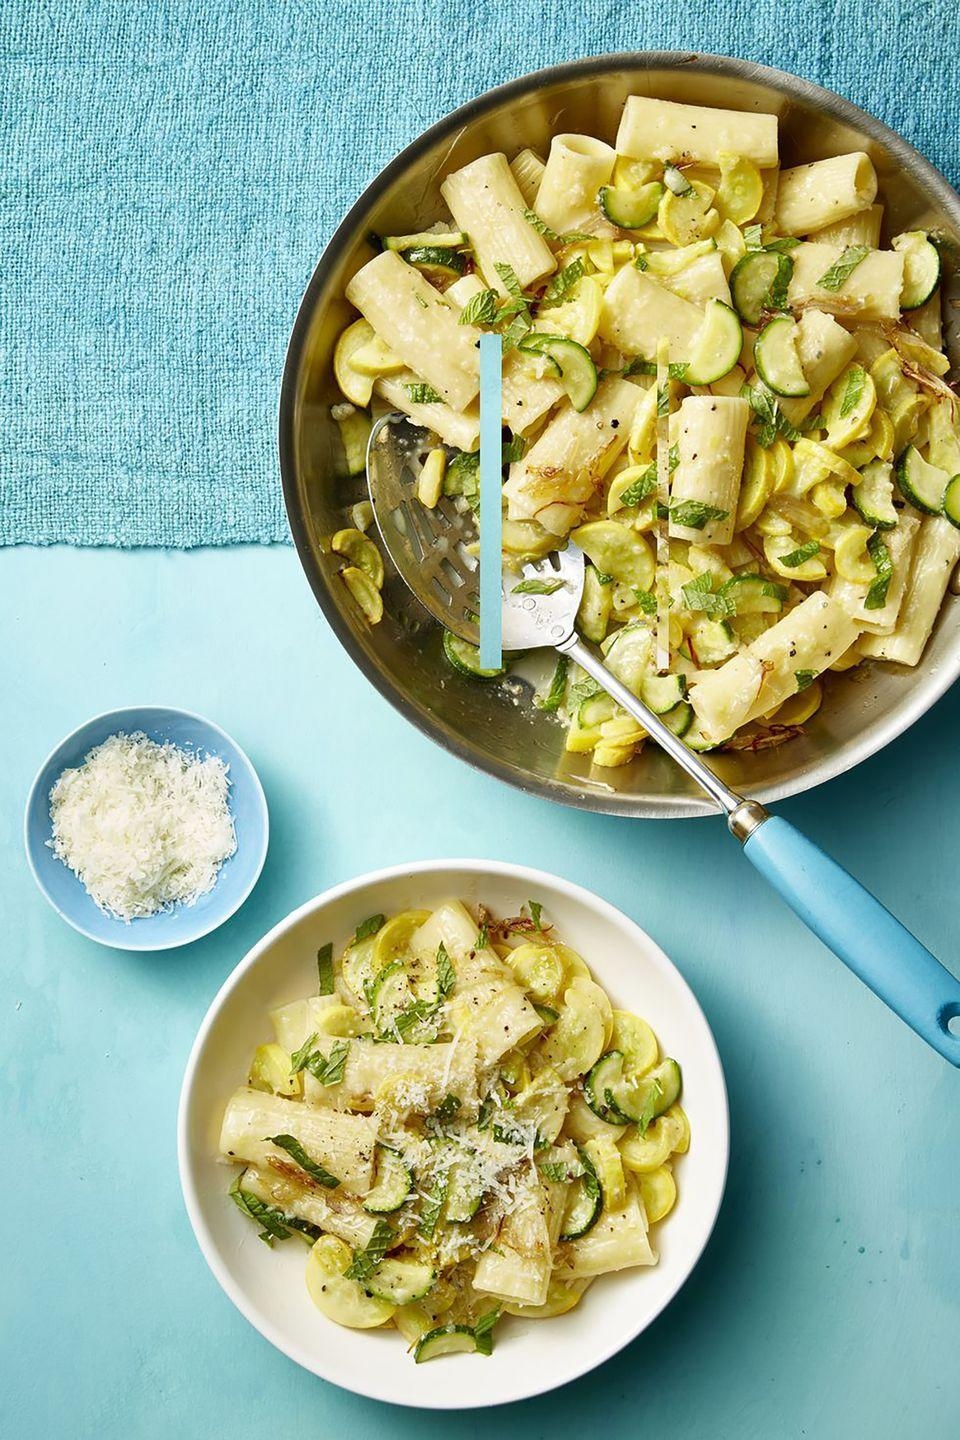 """<p>This filling dish works as both an entree or an appetizer, depending on your needs. </p><p><u><em><strong><a href=""""https://www.womansday.com/food-recipes/food-drinks/a21052788/summer-squash-mint-and-pecorino-pasta-recipe/"""" rel=""""nofollow noopener"""" target=""""_blank"""" data-ylk=""""slk:Get the recipe for Summer Squash, Mint, and Pecorino Pizza"""" class=""""link rapid-noclick-resp"""">Get the recipe for Summer Squash, Mint, and Pecorino Pizza</a>.</strong></em></u></p>"""